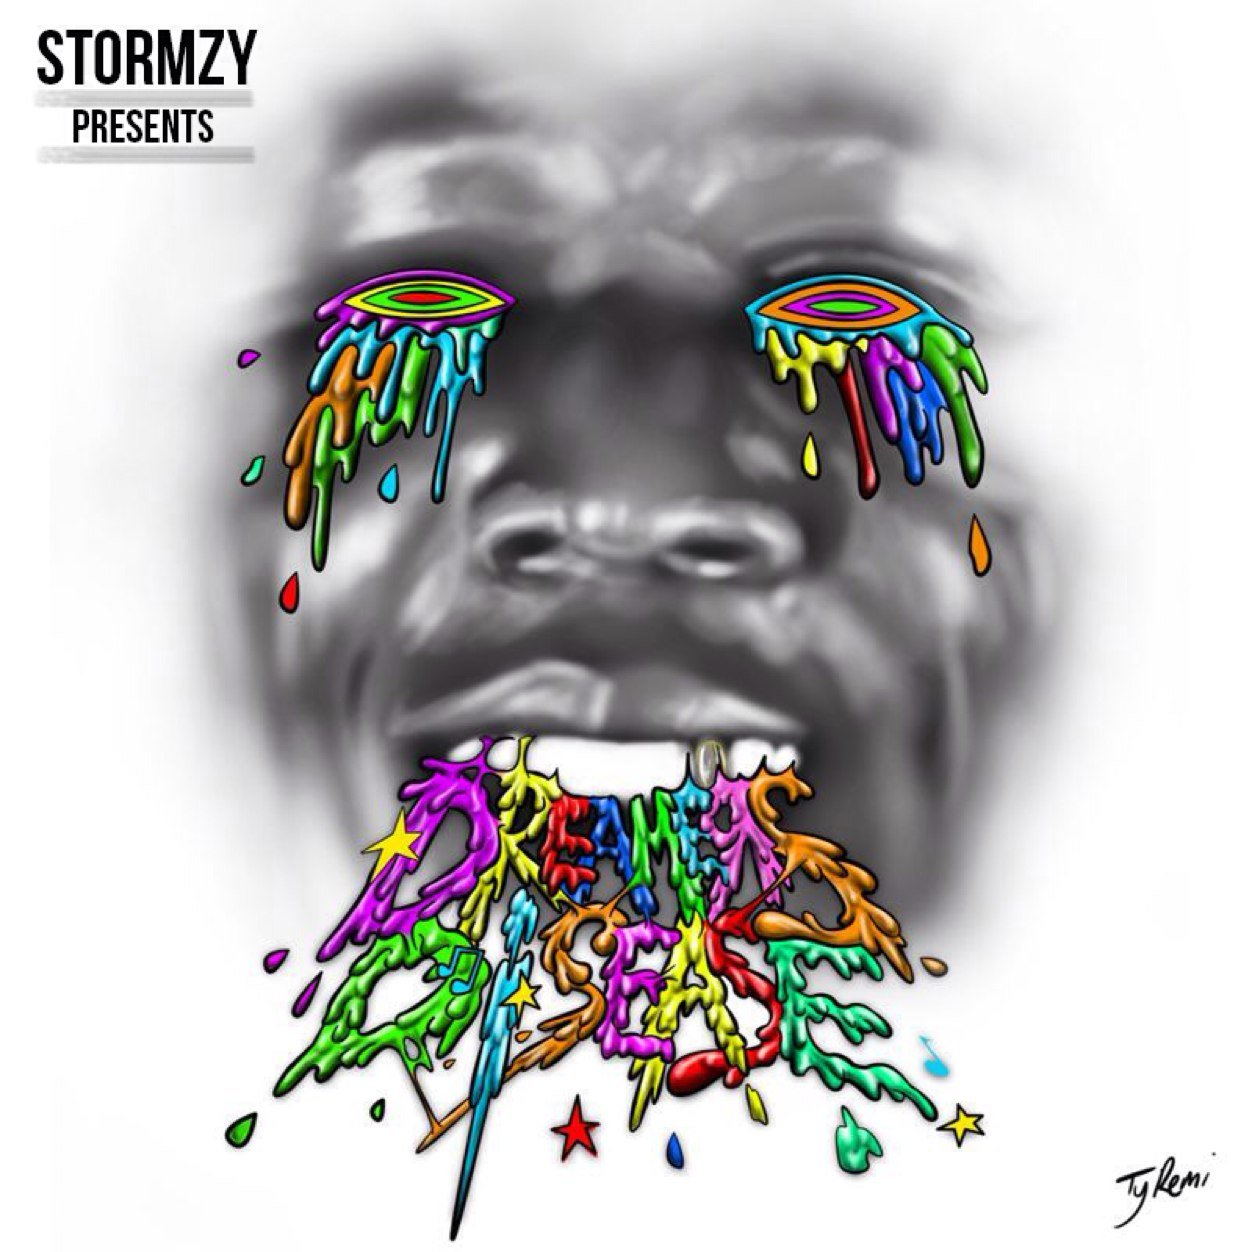 BRITHOPTV: [New Release] Stormzy – 'Dreamers Disease' E.P. OUT NOW! [Rel. 20/07/14] | #UKRap #UKHipHop